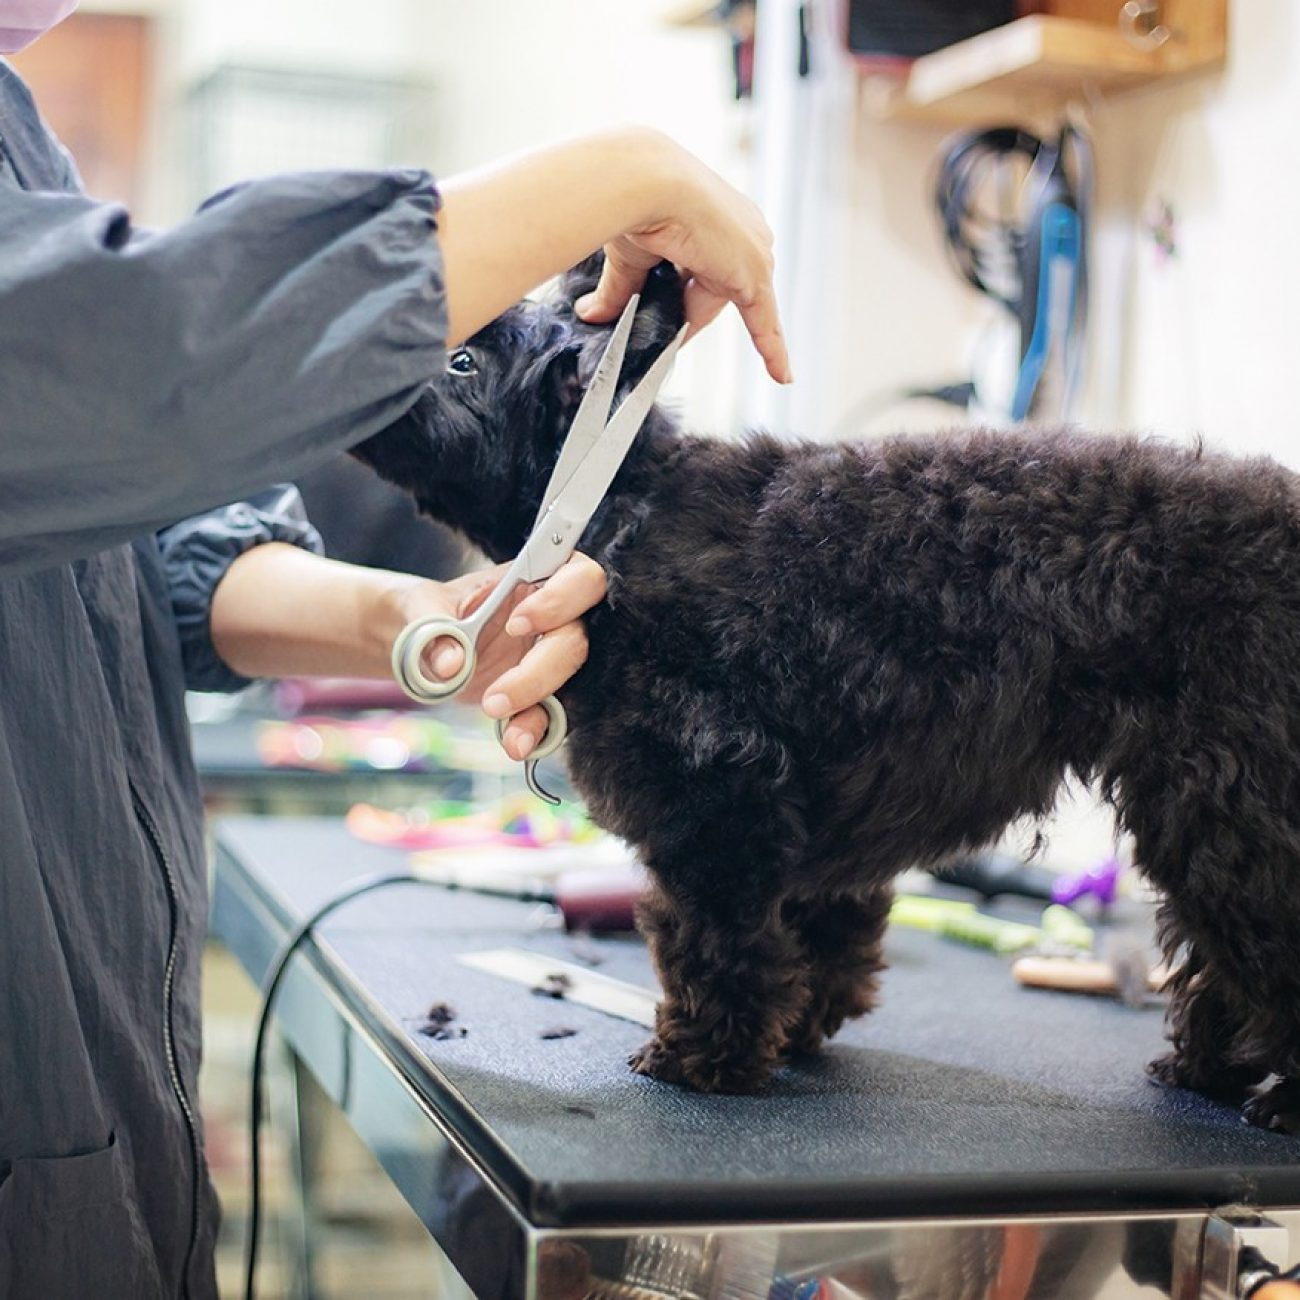 Woman are cutting hair and cleanning a dog in pet shop.